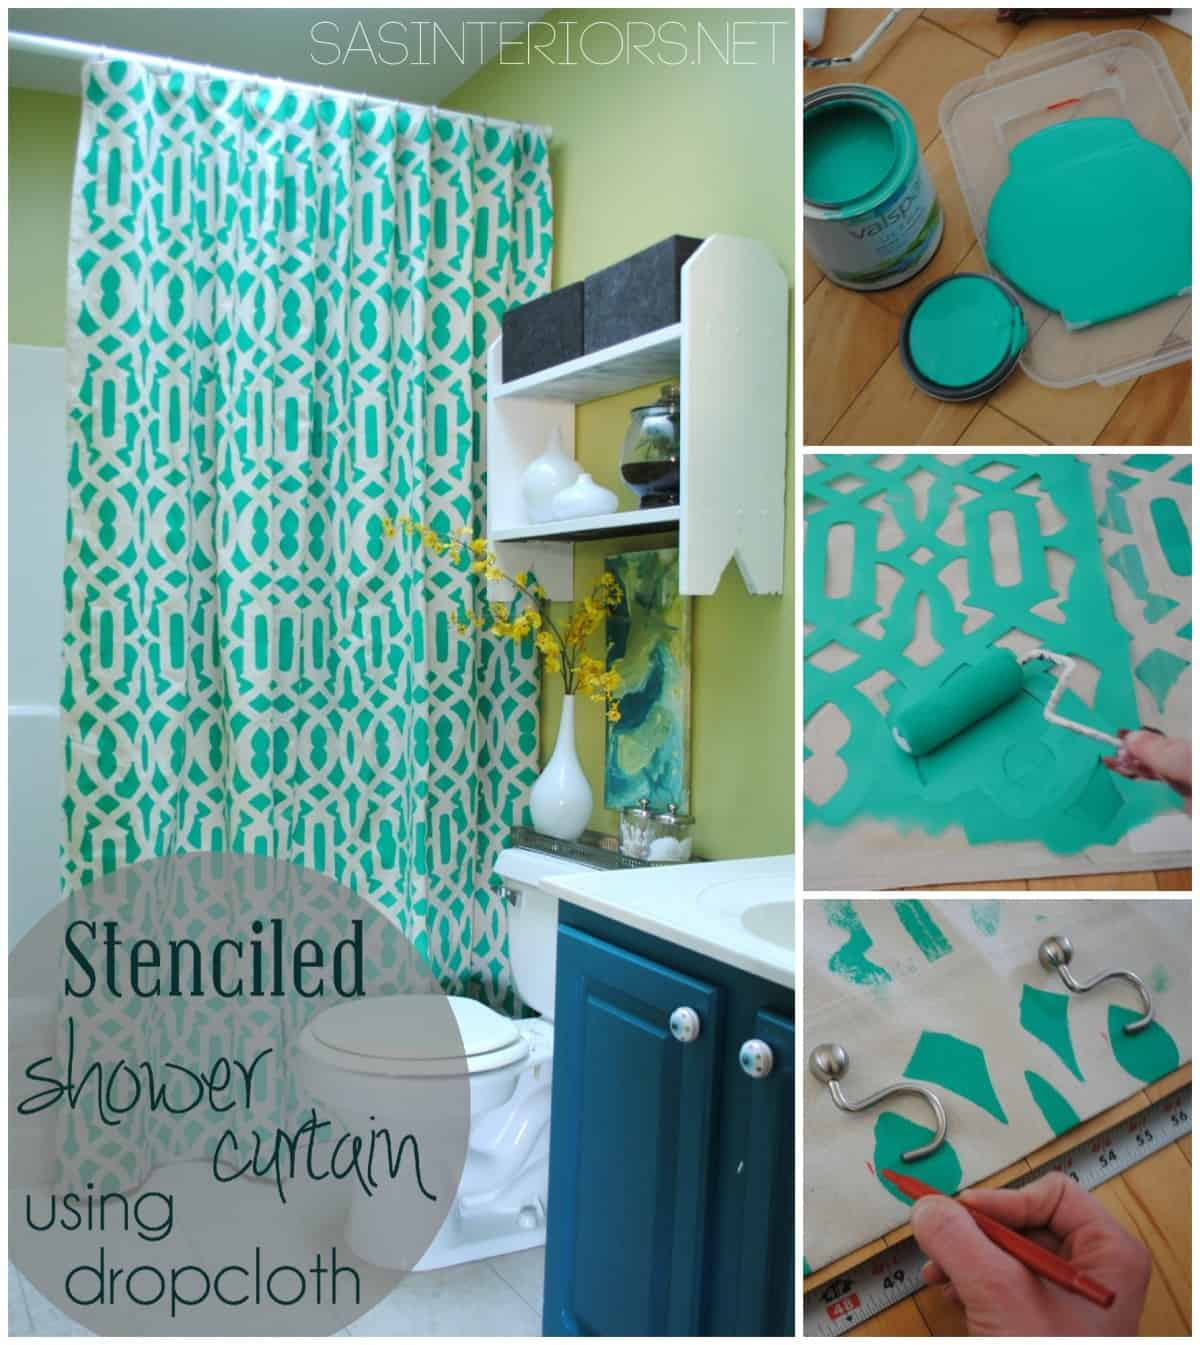 Custom stenciled shower curtain